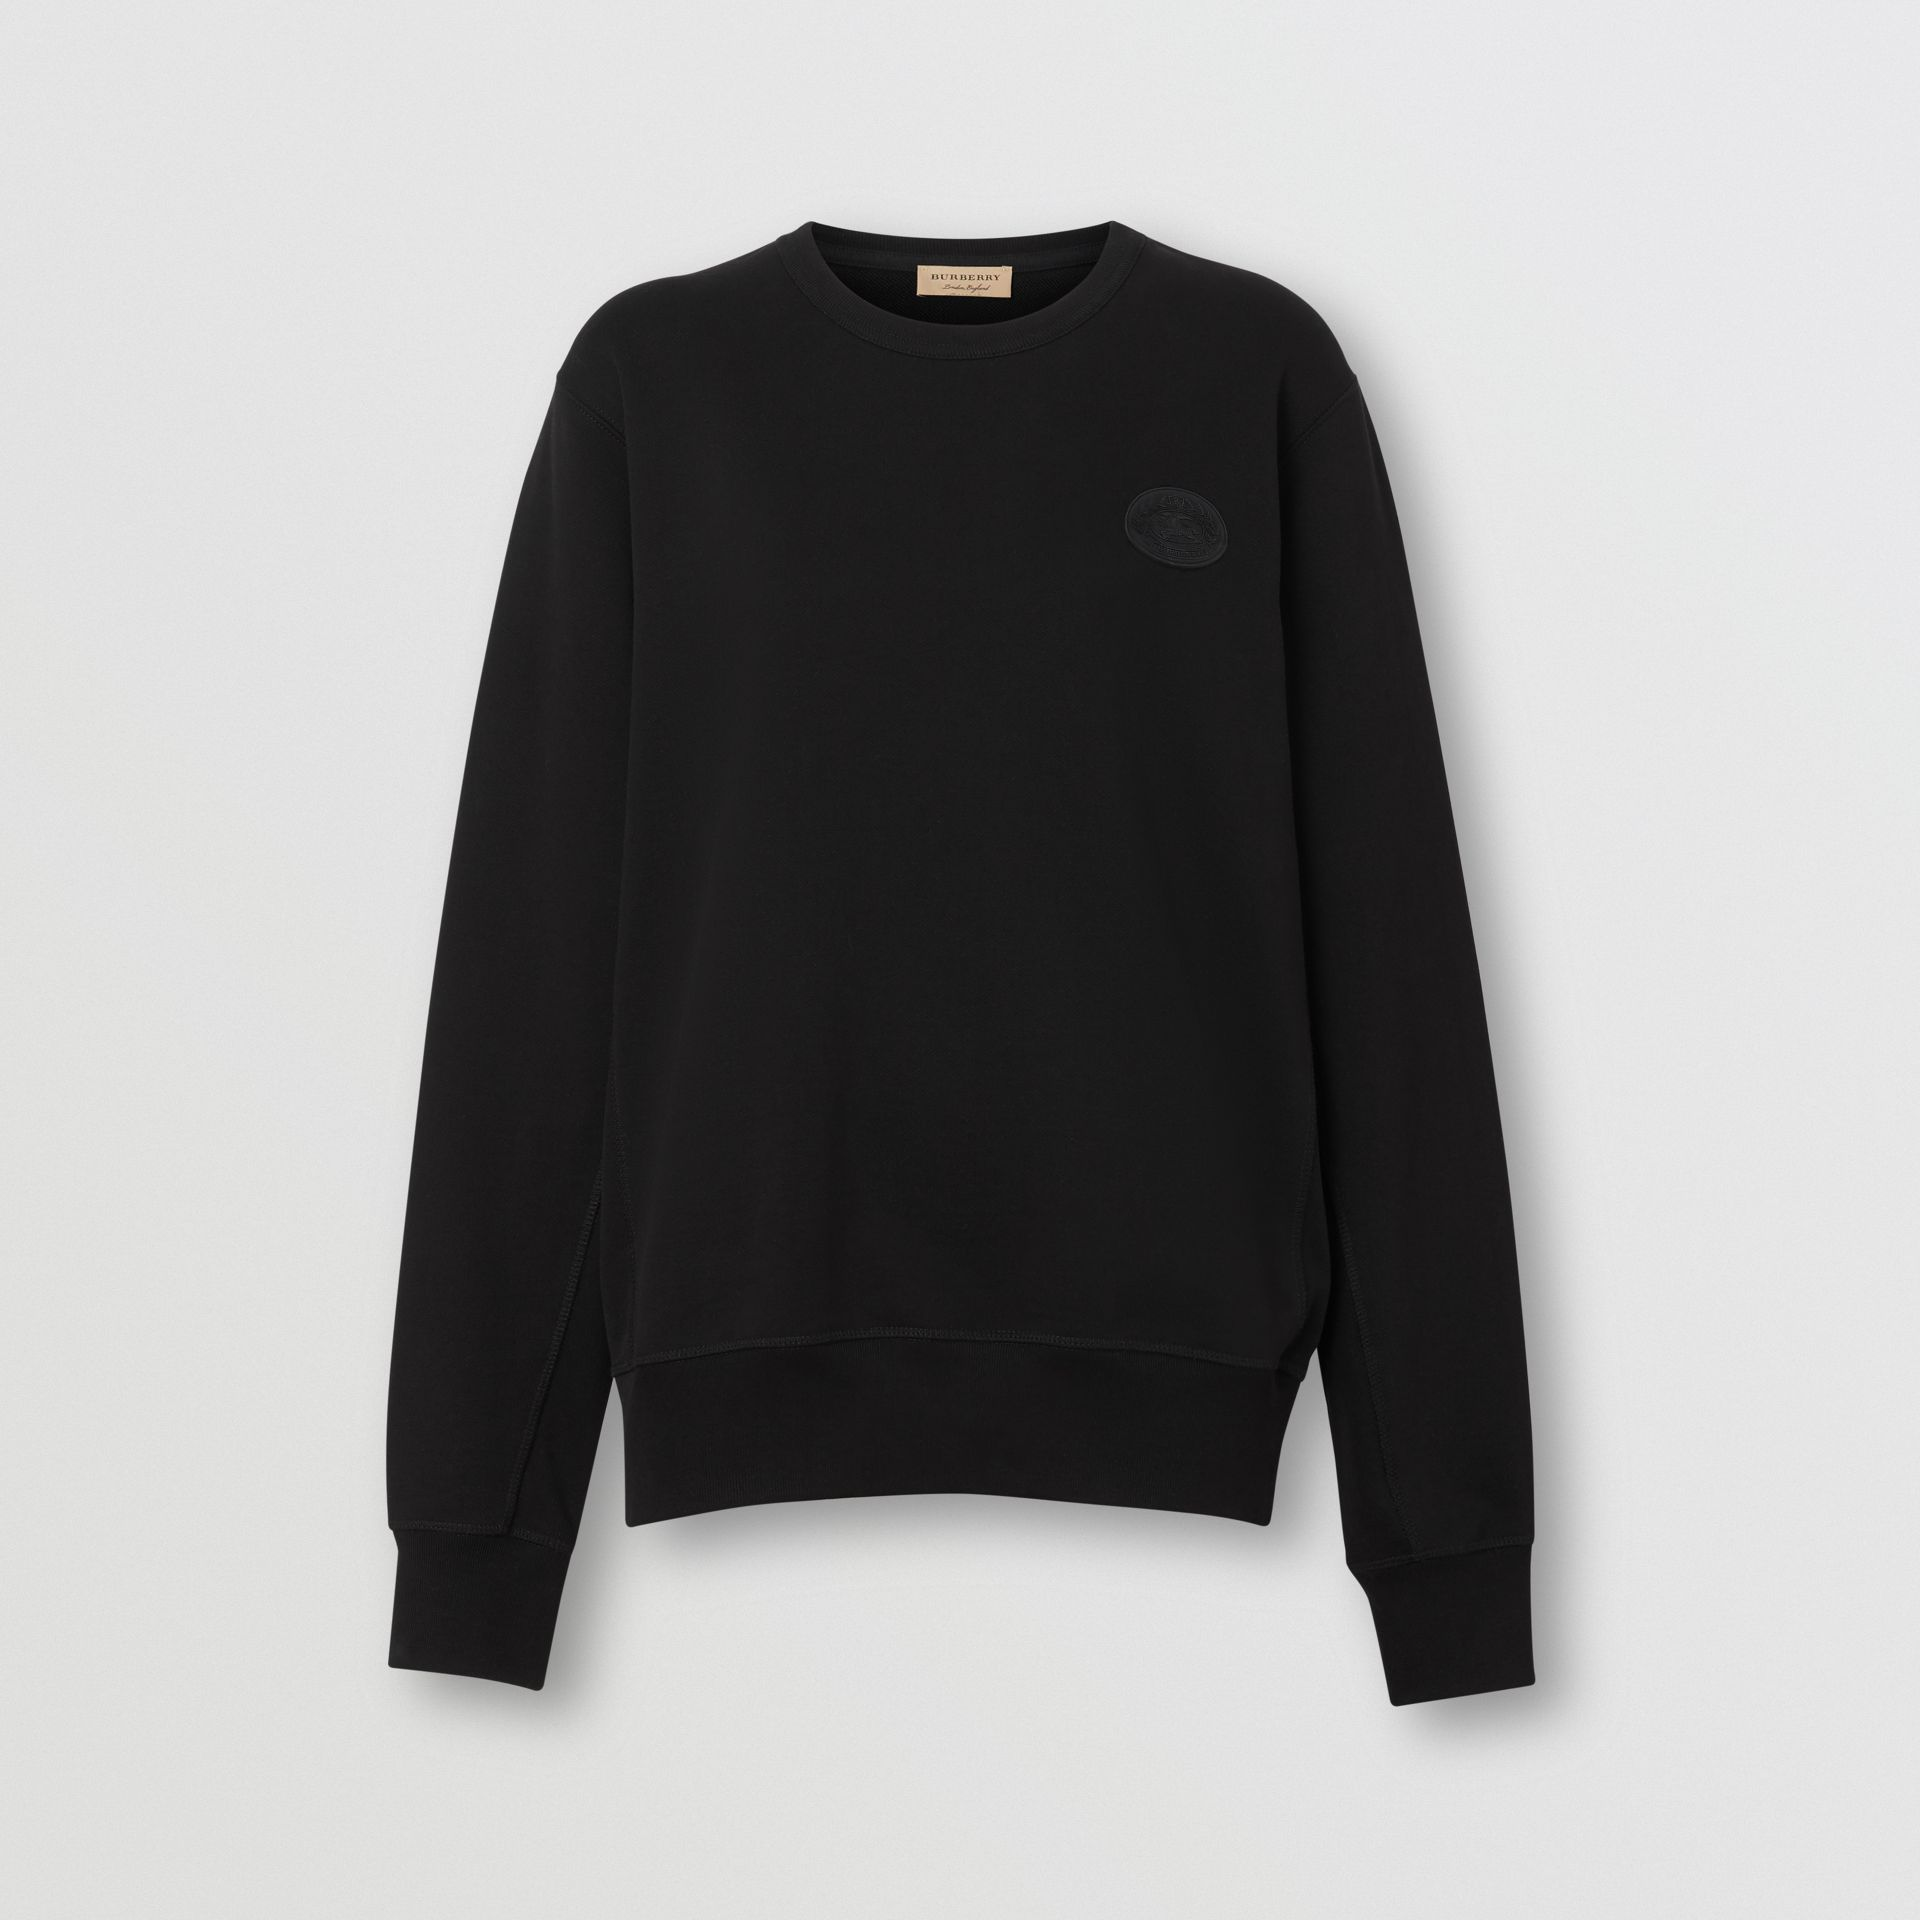 Crest Detail Cotton Sweatshirt in Black - Women | Burberry - gallery image 3